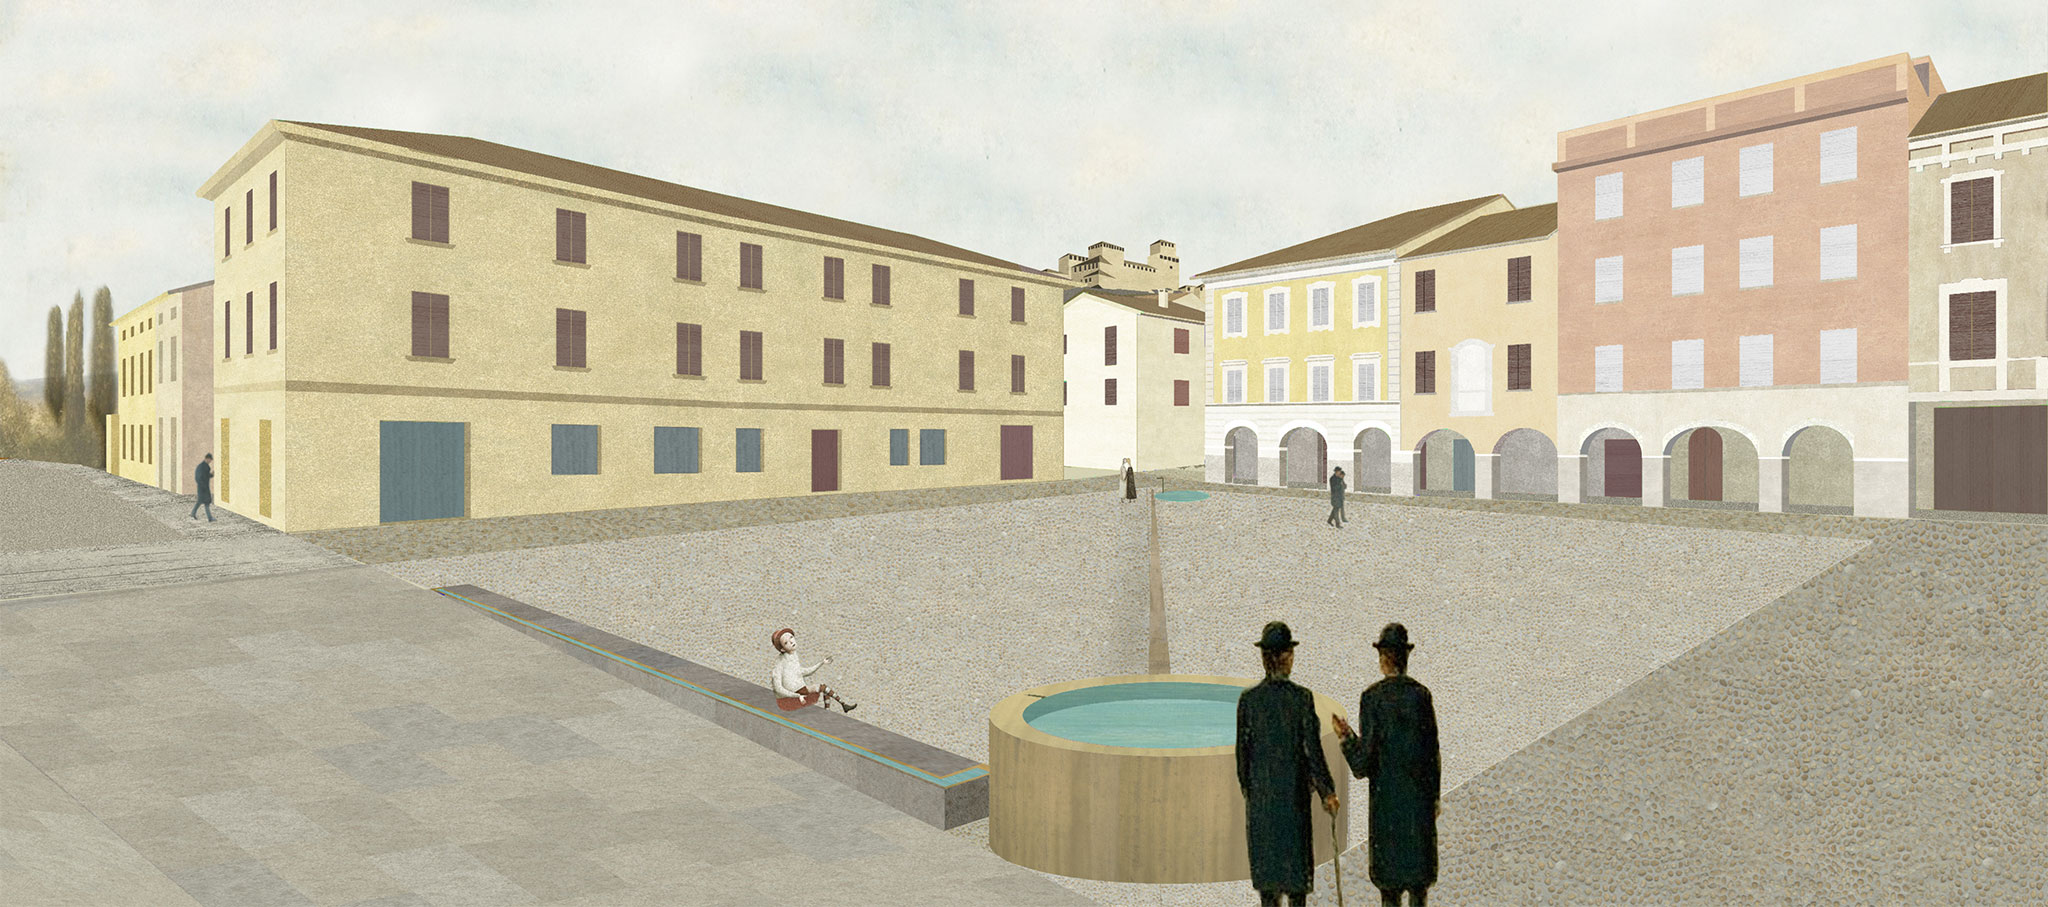 Rendering. Office X proposal for the Piazza Leoni in Torrechiara. Image courtesy of Office X